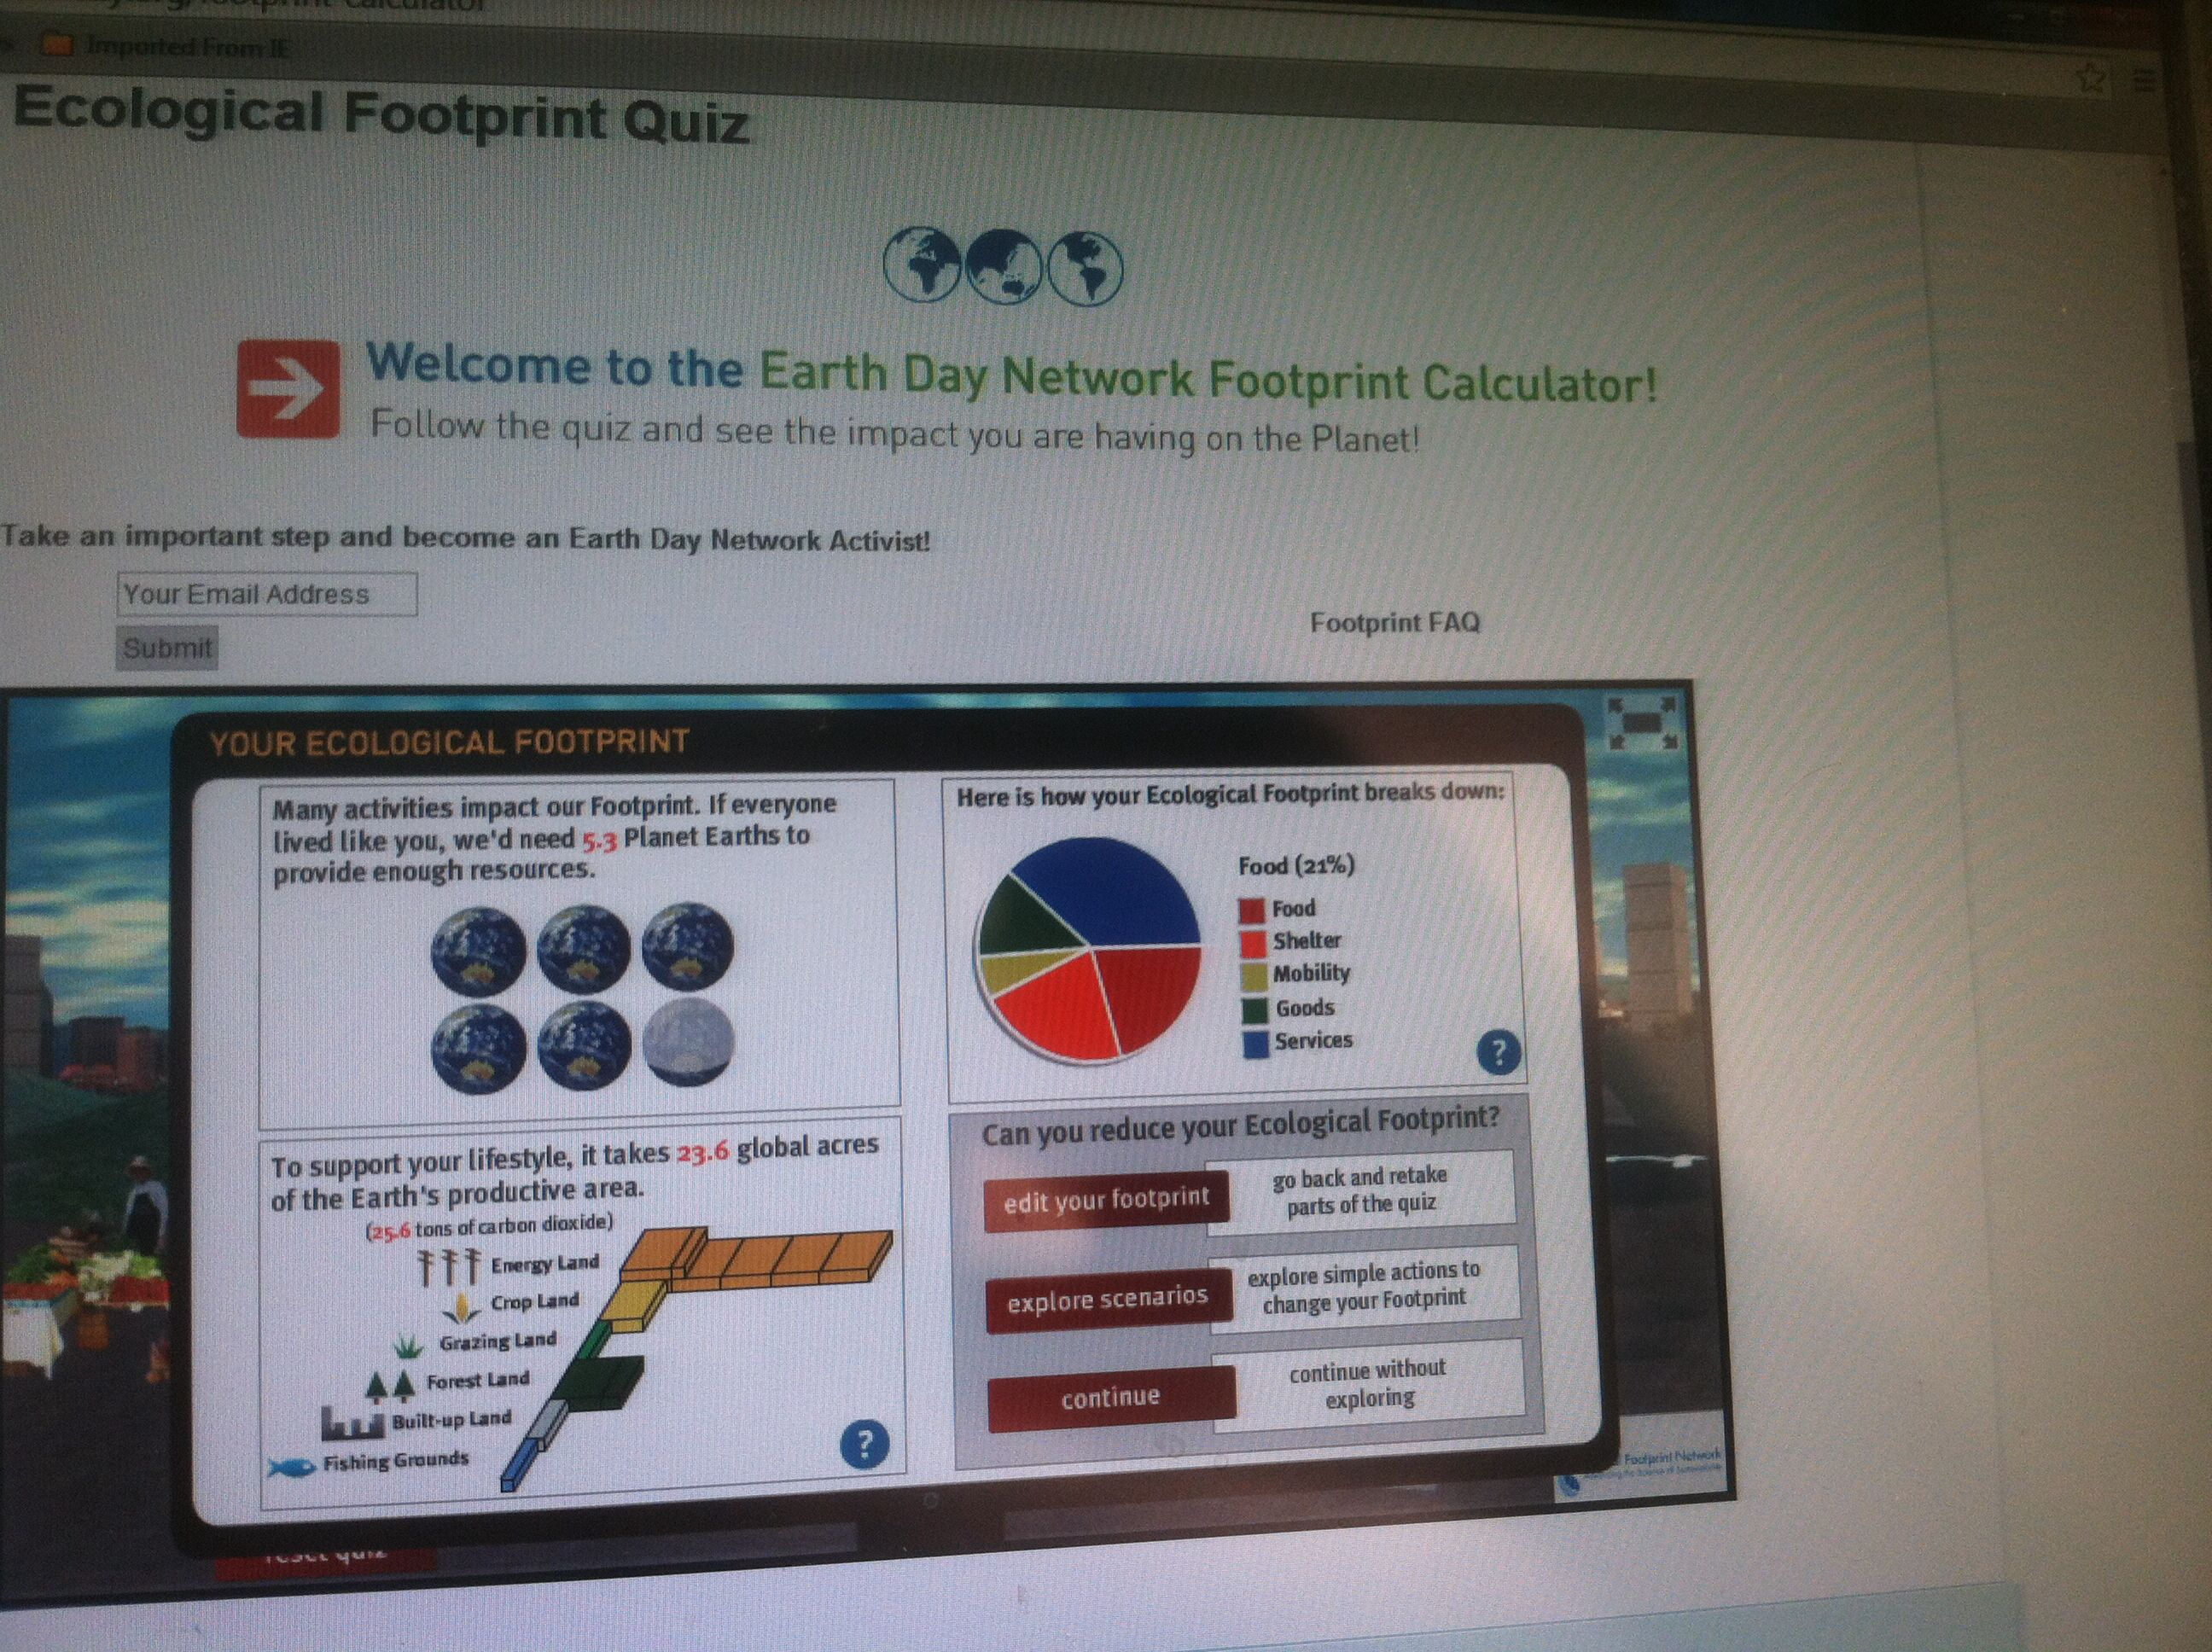 Take This Earth Day Quiz To Estimate Your Ecological Footprint Really Good Info On Earthday